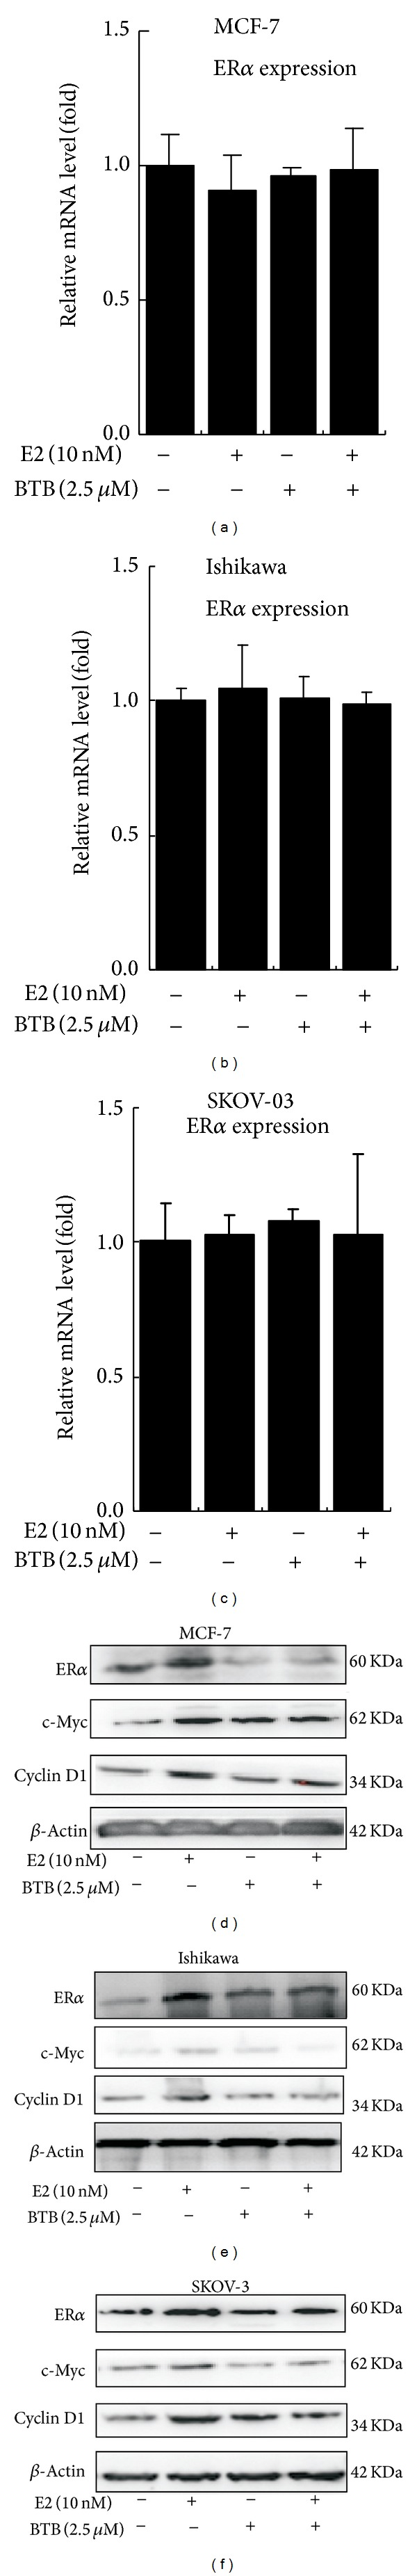 BTB reduces ER α , c-Myc, and <t>Cyclin</t> D1 protein expression levels in MCF-7, Ishikawa, and SKOV-3 cells but has no effect on ER α gene expression at mRNA level. Western blot analyses of ER α , c-Myc, and Cyclin D1 levels in control and 2.5 uM BTB treated MCF-7, Ishikawa, and SKOV-3 cells in the absence or presence of 10 nM E2. 50 μ g of total protein from cells was applied onto a 10% sodium dodecyl sulfate-polyacrylamide gel and subjected to electrophoresis followed by Western blot using anti-ER α , <t>anti-c-Myc,</t> or anti-Cyclin D1 antibodies. Representative graphs were shown from consistent results collected from three independent experiments.